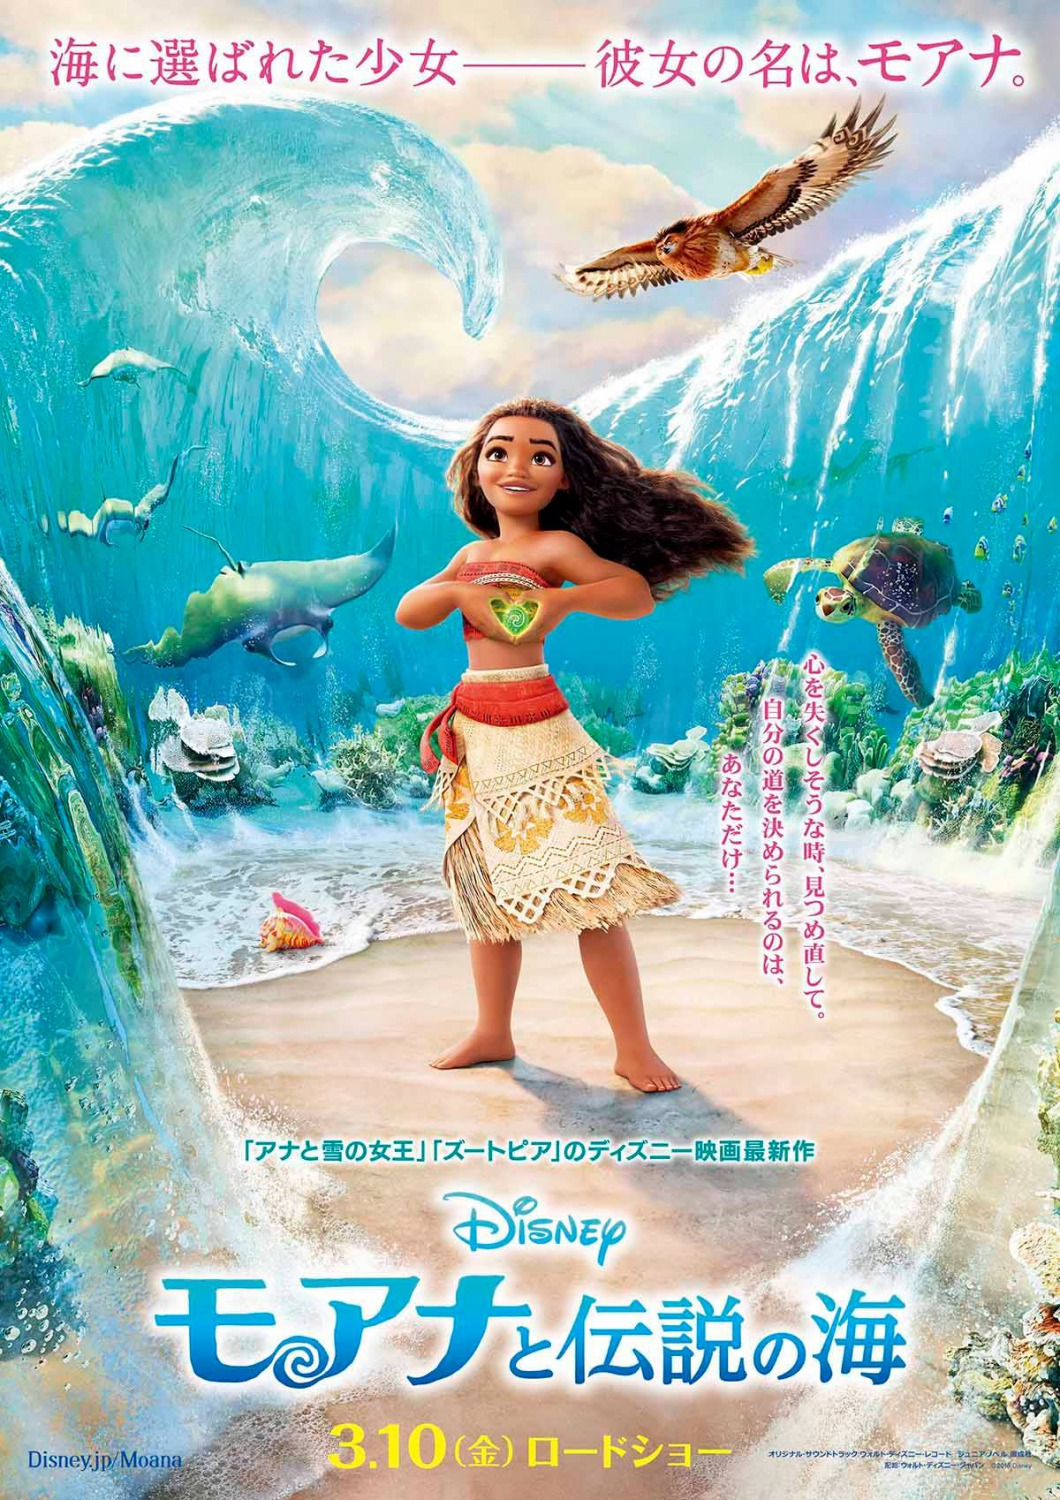 Free Oscars Invitations For The Academy Awards as well Free Printable Oscar Ballot in addition Mickey Mouse Birthday Party Invitations in addition Nuevos Posters De Vaiana Moana likewise 1. on oscar party 2016 invitation